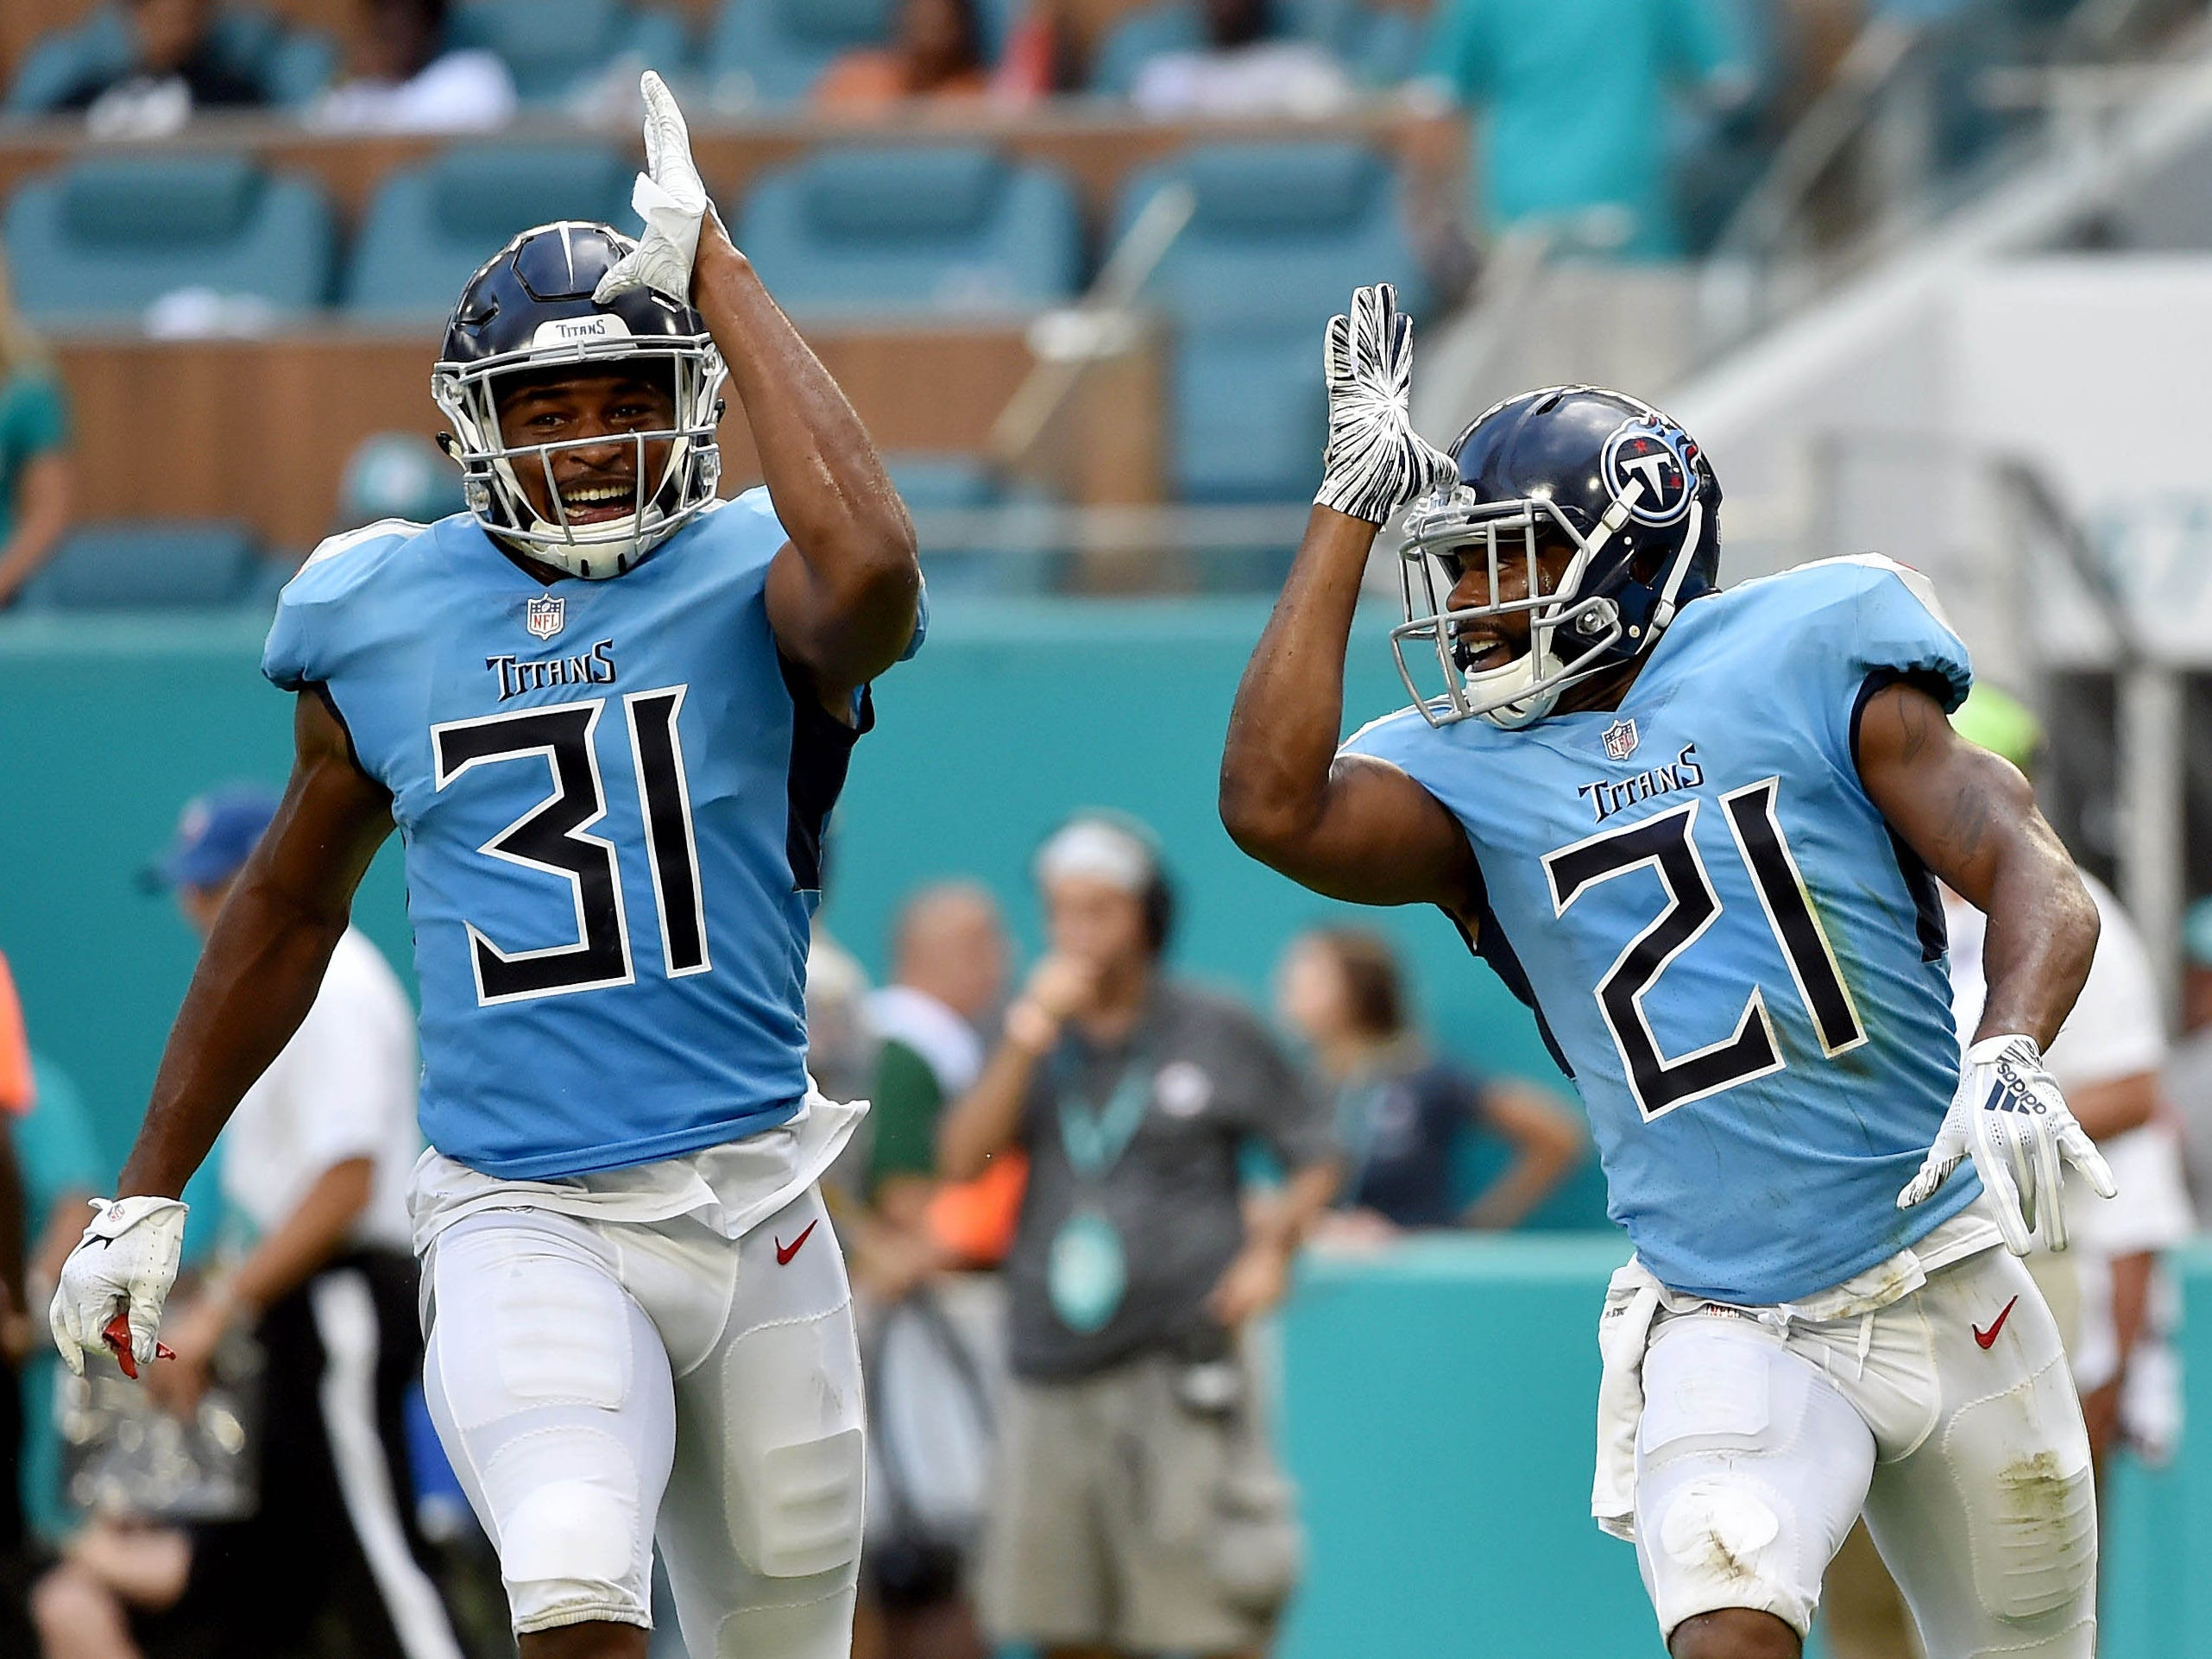 Tennessee Titans defensive back Malcolm Butler (right) celebrates  with teammate Kevin Byard (31) after making an interception during the second half against the Miami Dolphins at Hard Rock Stadium.